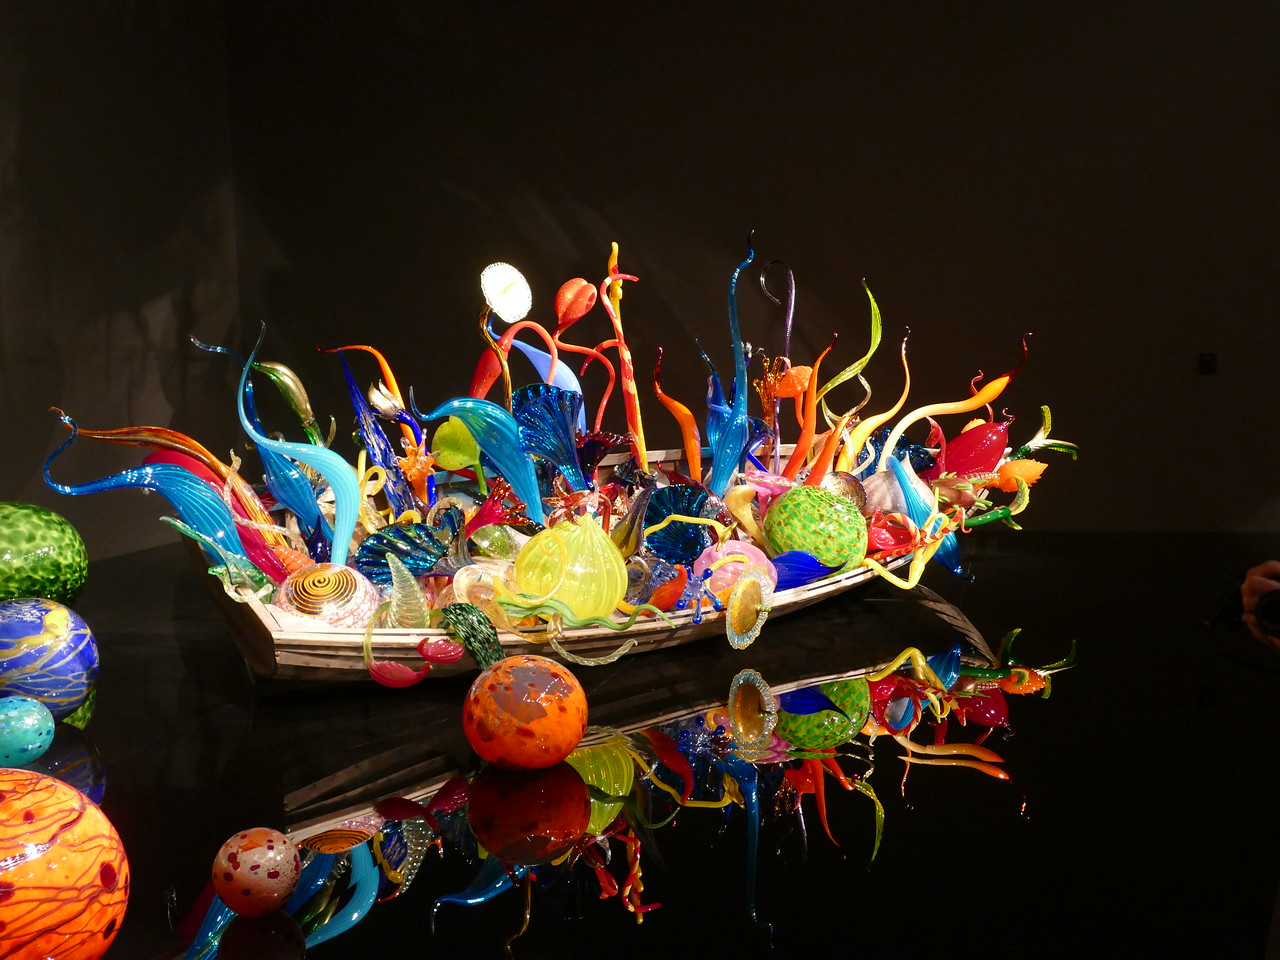 We spent a couple of days in Seattle visiting  Lesley's cousin and seeing this glass museum.  Very imaginative work like this boat full of strange and colorful creatures.  We also spent most of a day in the Museum of Flight.